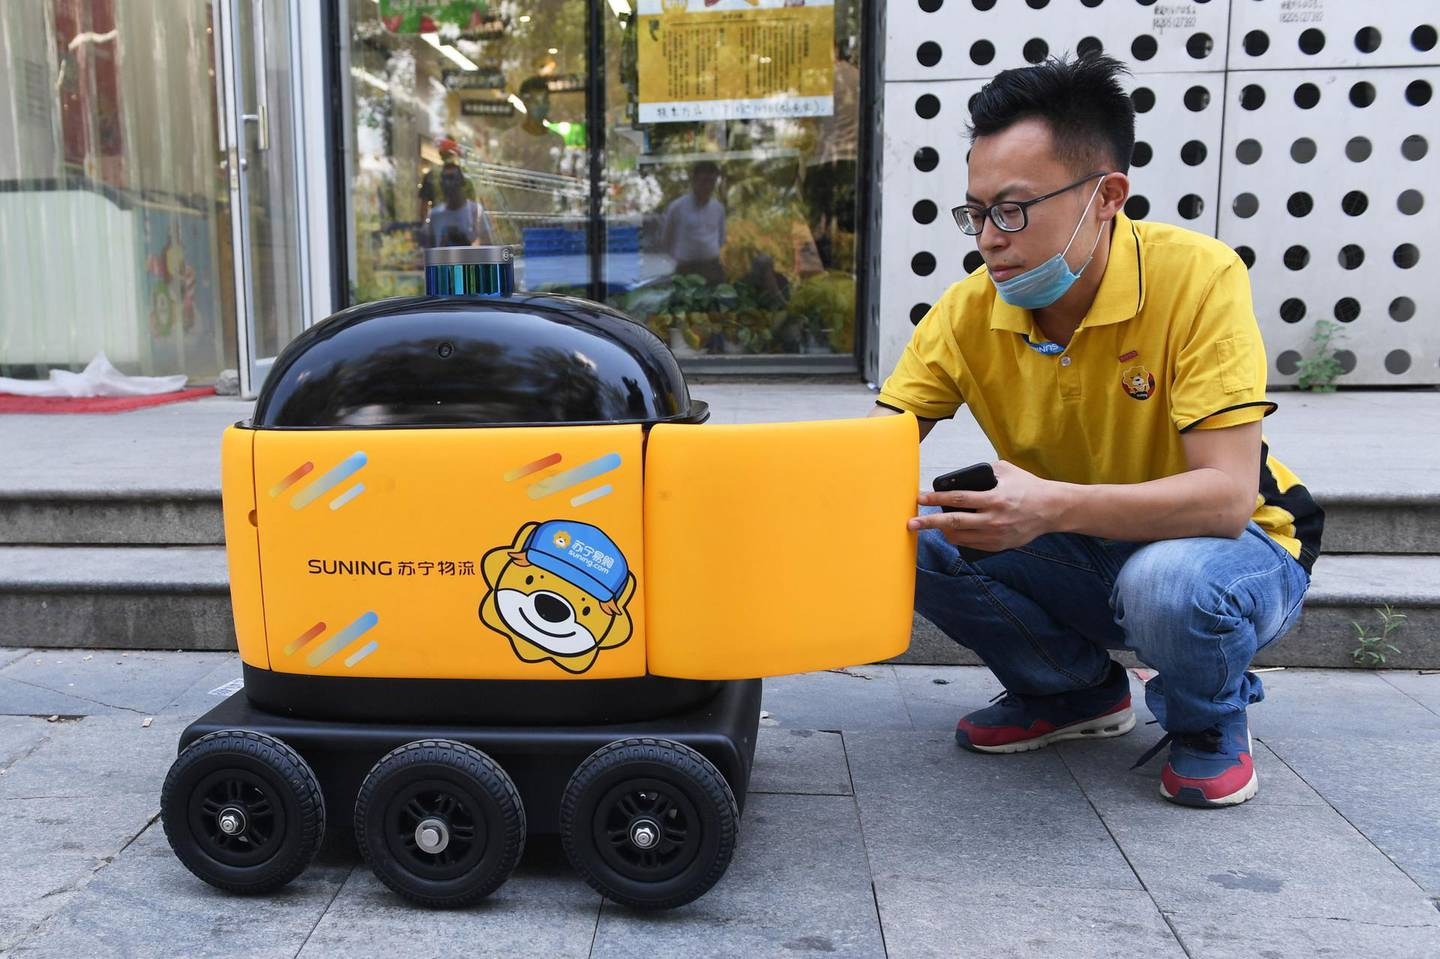 """In this photo taken on June 28, 2018, a Suning worker loads a delivery robot with groceries outside a Suning supermarket during a demonstration of the robot in Beijing. Along a quiet residential street on the outer edges of Beijing, a yellow and black cube about the size of a small washing machine trundles leisurely to its destination. This """"little yellow horse"""" is an autonomous delivery robot, ferrying daily essentials like drinks, fruit and snacks from the local store to the residents of the """"Kafka"""" compound in the Chinese capital.  - TO GO WITH AFP STORY CHINA-TECHNOLOGY-ROBOTS-CONSUMER-SCIENCE,FEATURE BY LUDOVIC EHRET  / AFP / GREG BAKER / TO GO WITH AFP STORY CHINA-TECHNOLOGY-ROBOTS-CONSUMER-SCIENCE,FEATURE BY LUDOVIC EHRET"""